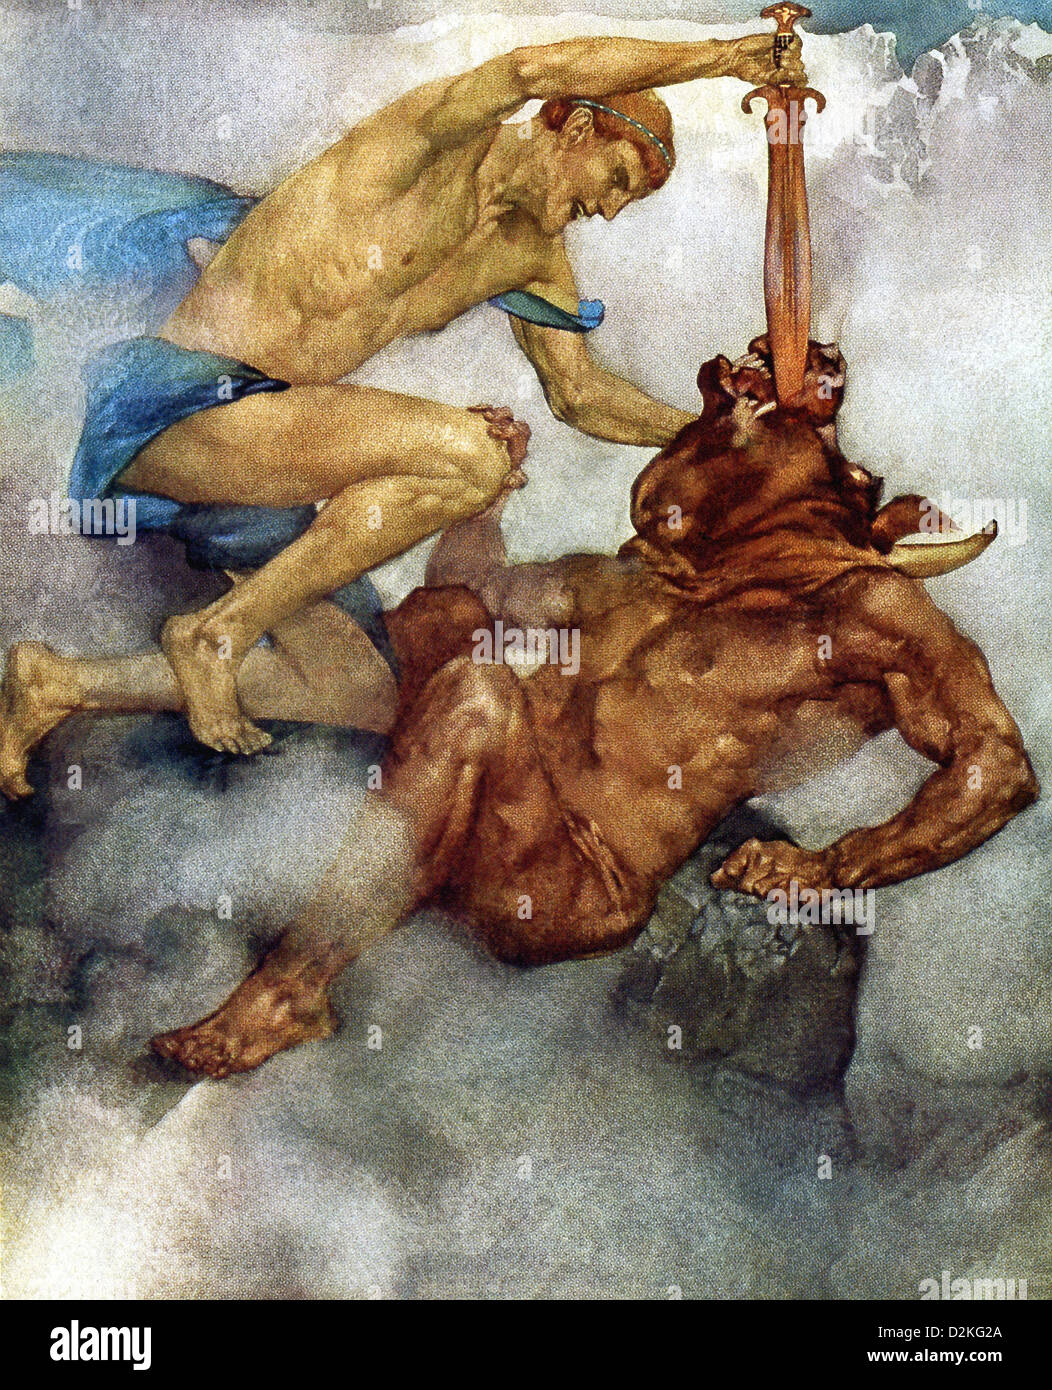 greek legend stock photos greek legend stock images  in greek mythology theseus is a legendary hero of athens who kills the minotaur